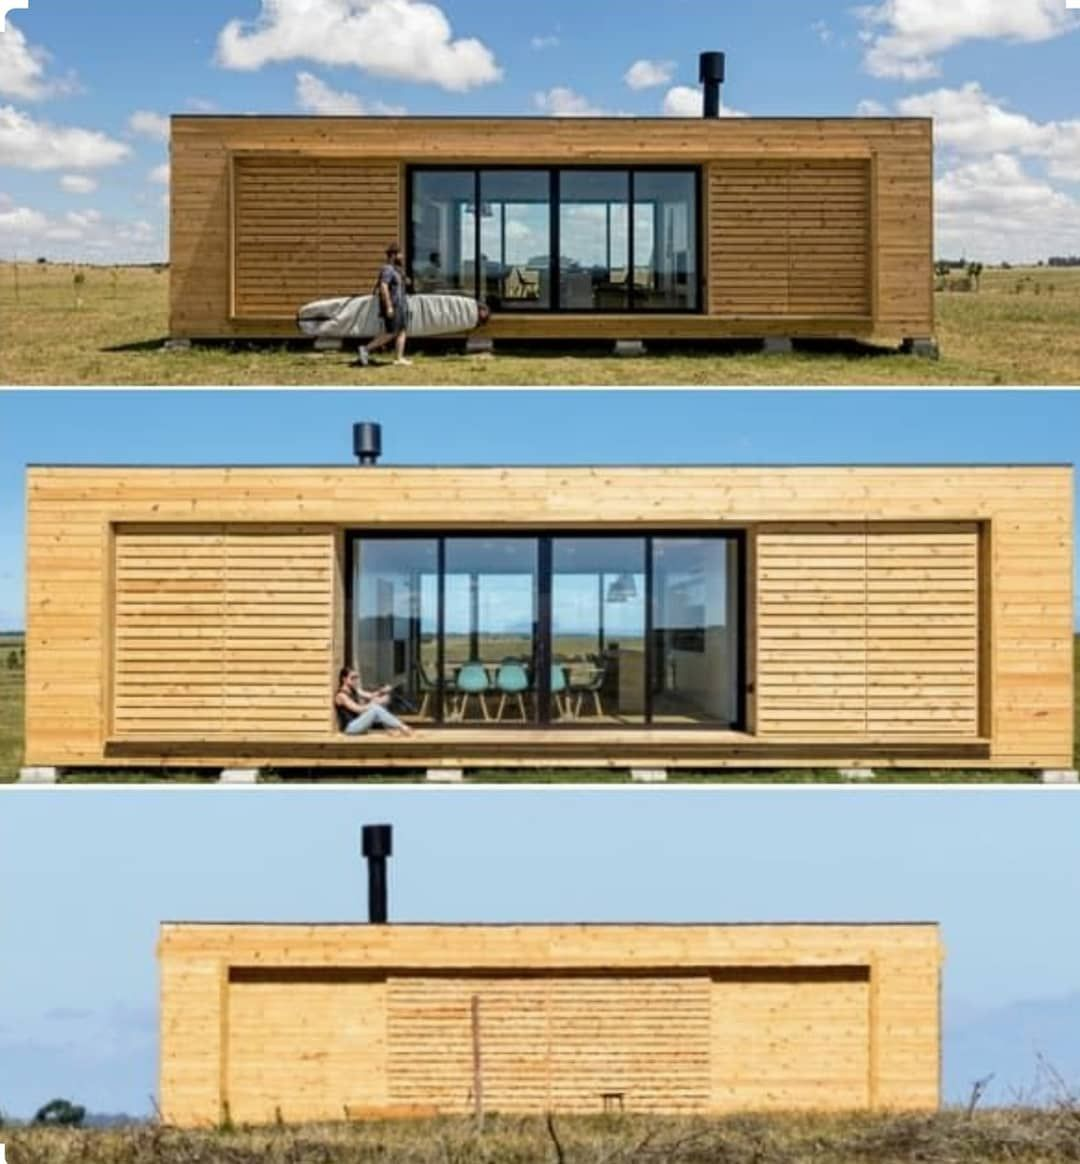 No feriadao leve seu bangalo pra onde quiser  importante  curtir pakas also pin by gonawa on cargo container home design in shipping rh pinterest